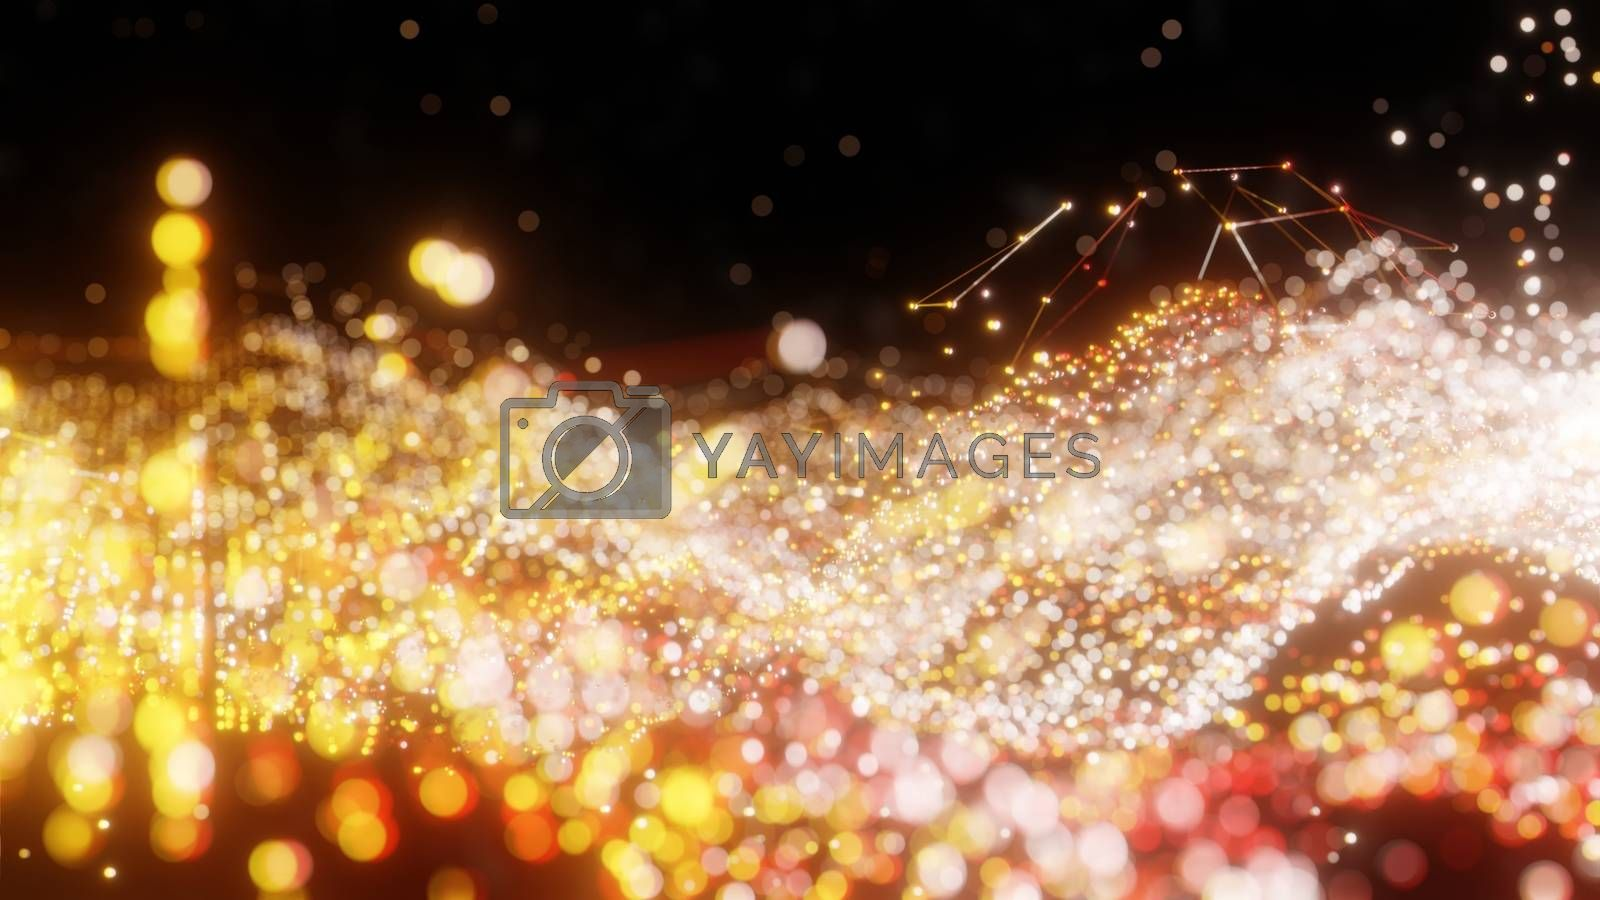 Plexus of abstract glow dots on a black background. Loop animations. 3D illustration